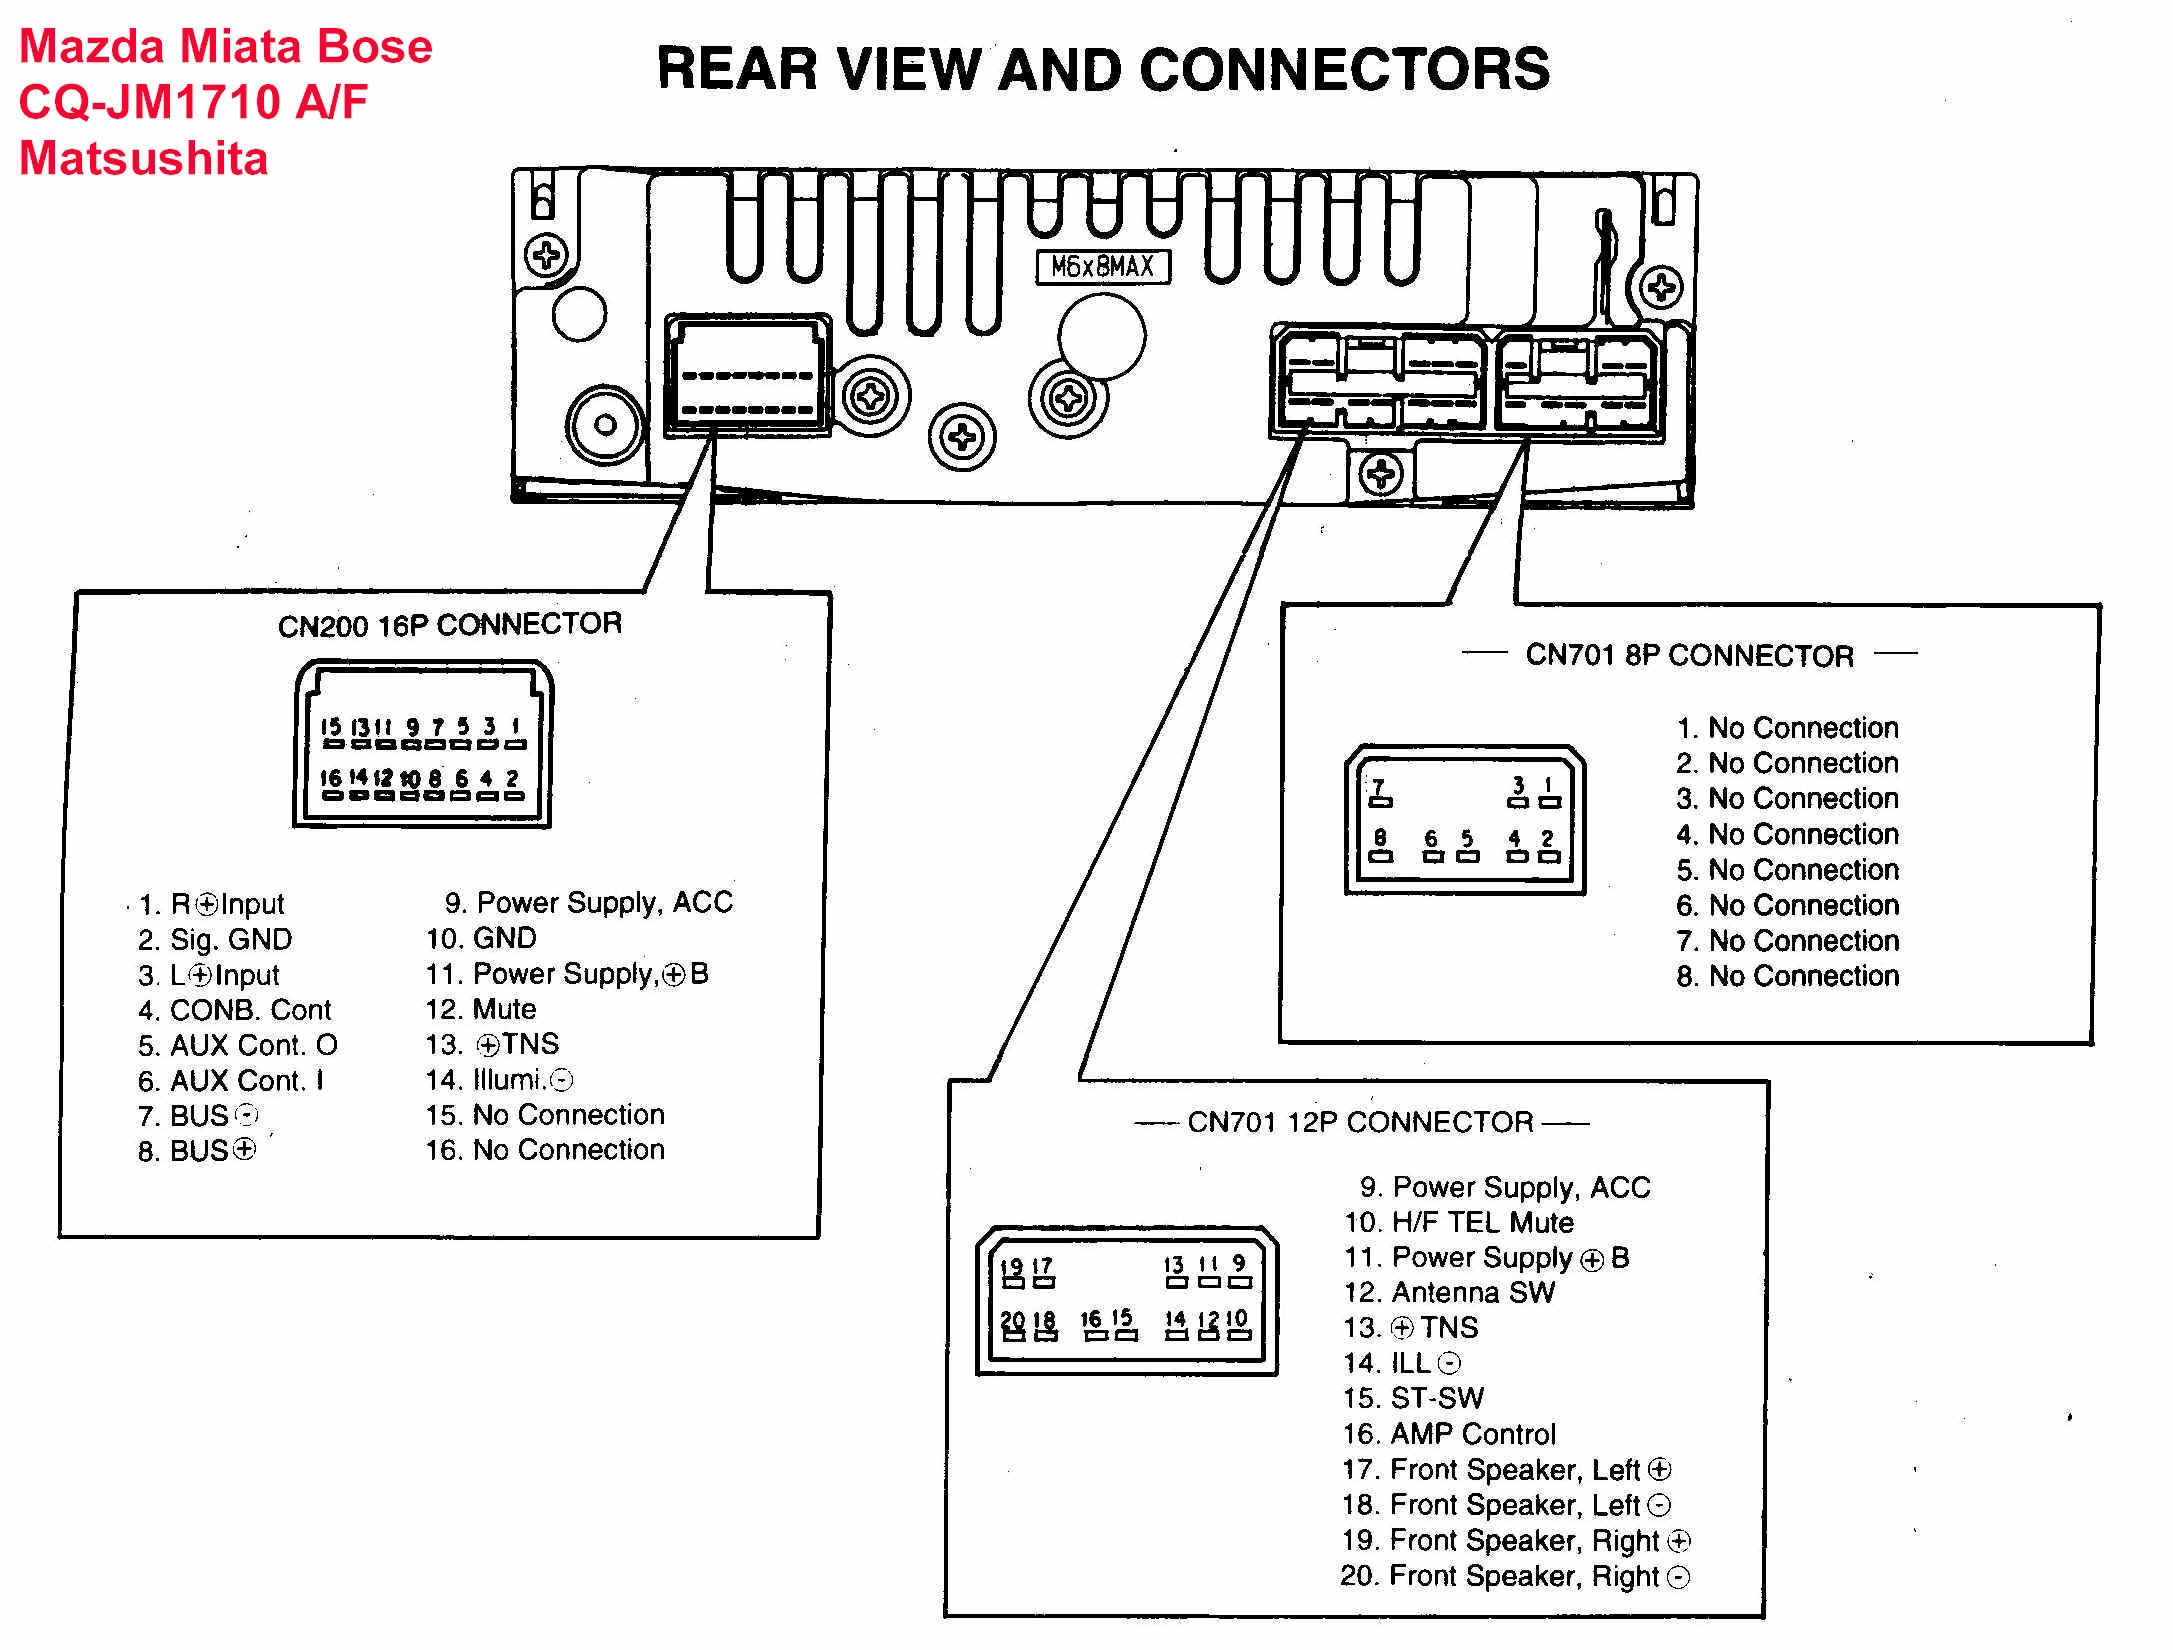 Car Stereo Installation Wiring Diagram Car with Detaleted Wiring and Factory Stereo Diagrams Wiring Diagram Of Car Stereo Installation Wiring Diagram